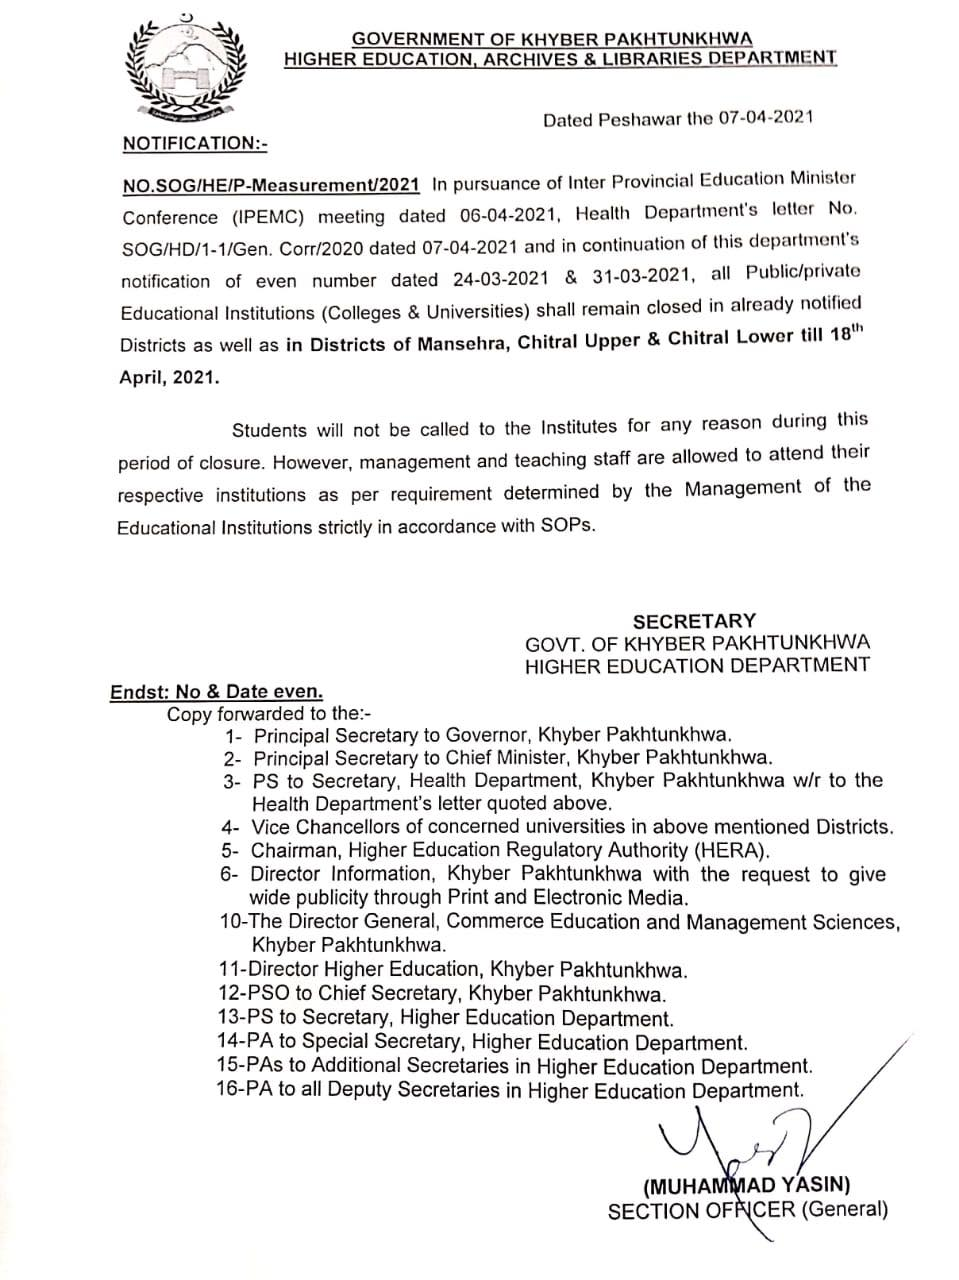 Closing Educational Institutions in KP till 18th April 2021